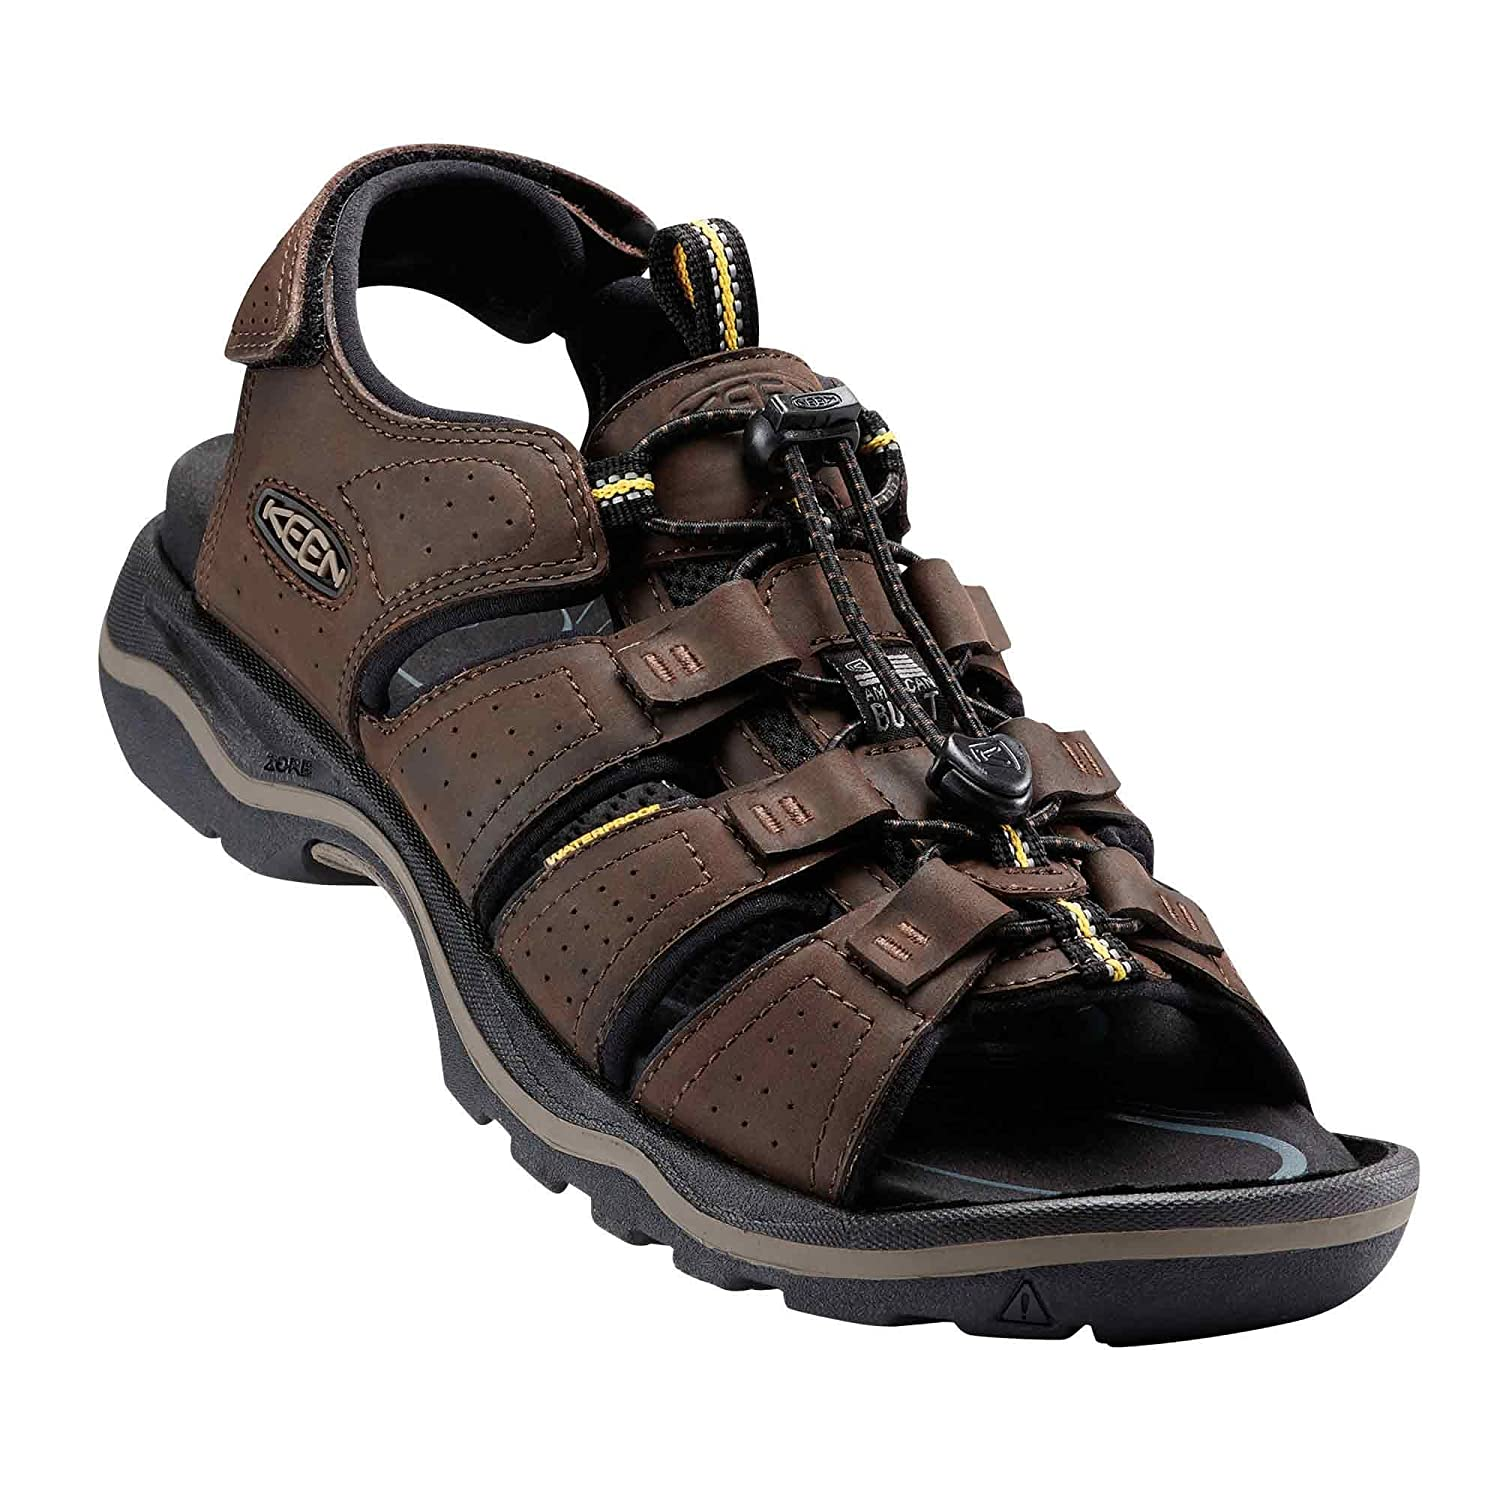 KEEN Men's Rialto Open Toe, Sandal for The Outdoors B01H8MHHIK 9 D(M) US|Black/Neutral Gray